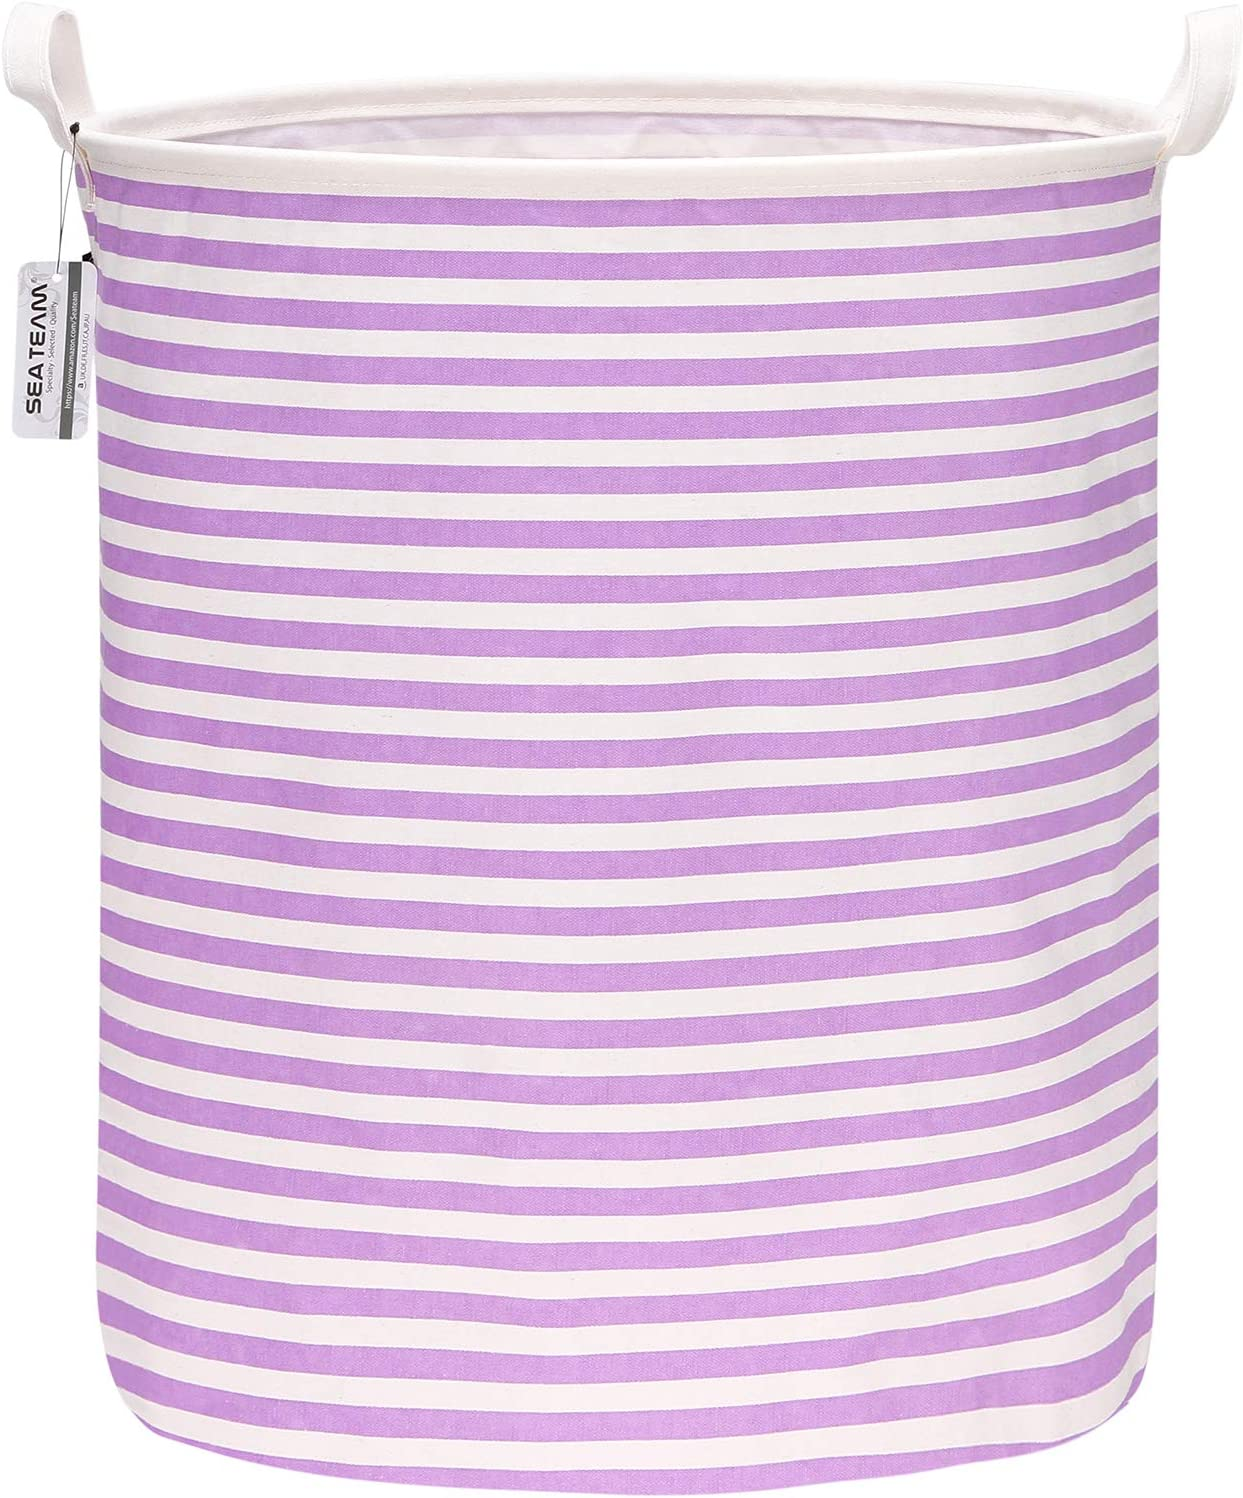 "Sea Team 19.7 Inches Large Sized Waterproof Coating Ramie Cotton Fabric Folding Laundry Hamper Bucket Cylindric Burlap Canvas Storage Basket (19.7"", Purple & White Stripe)"